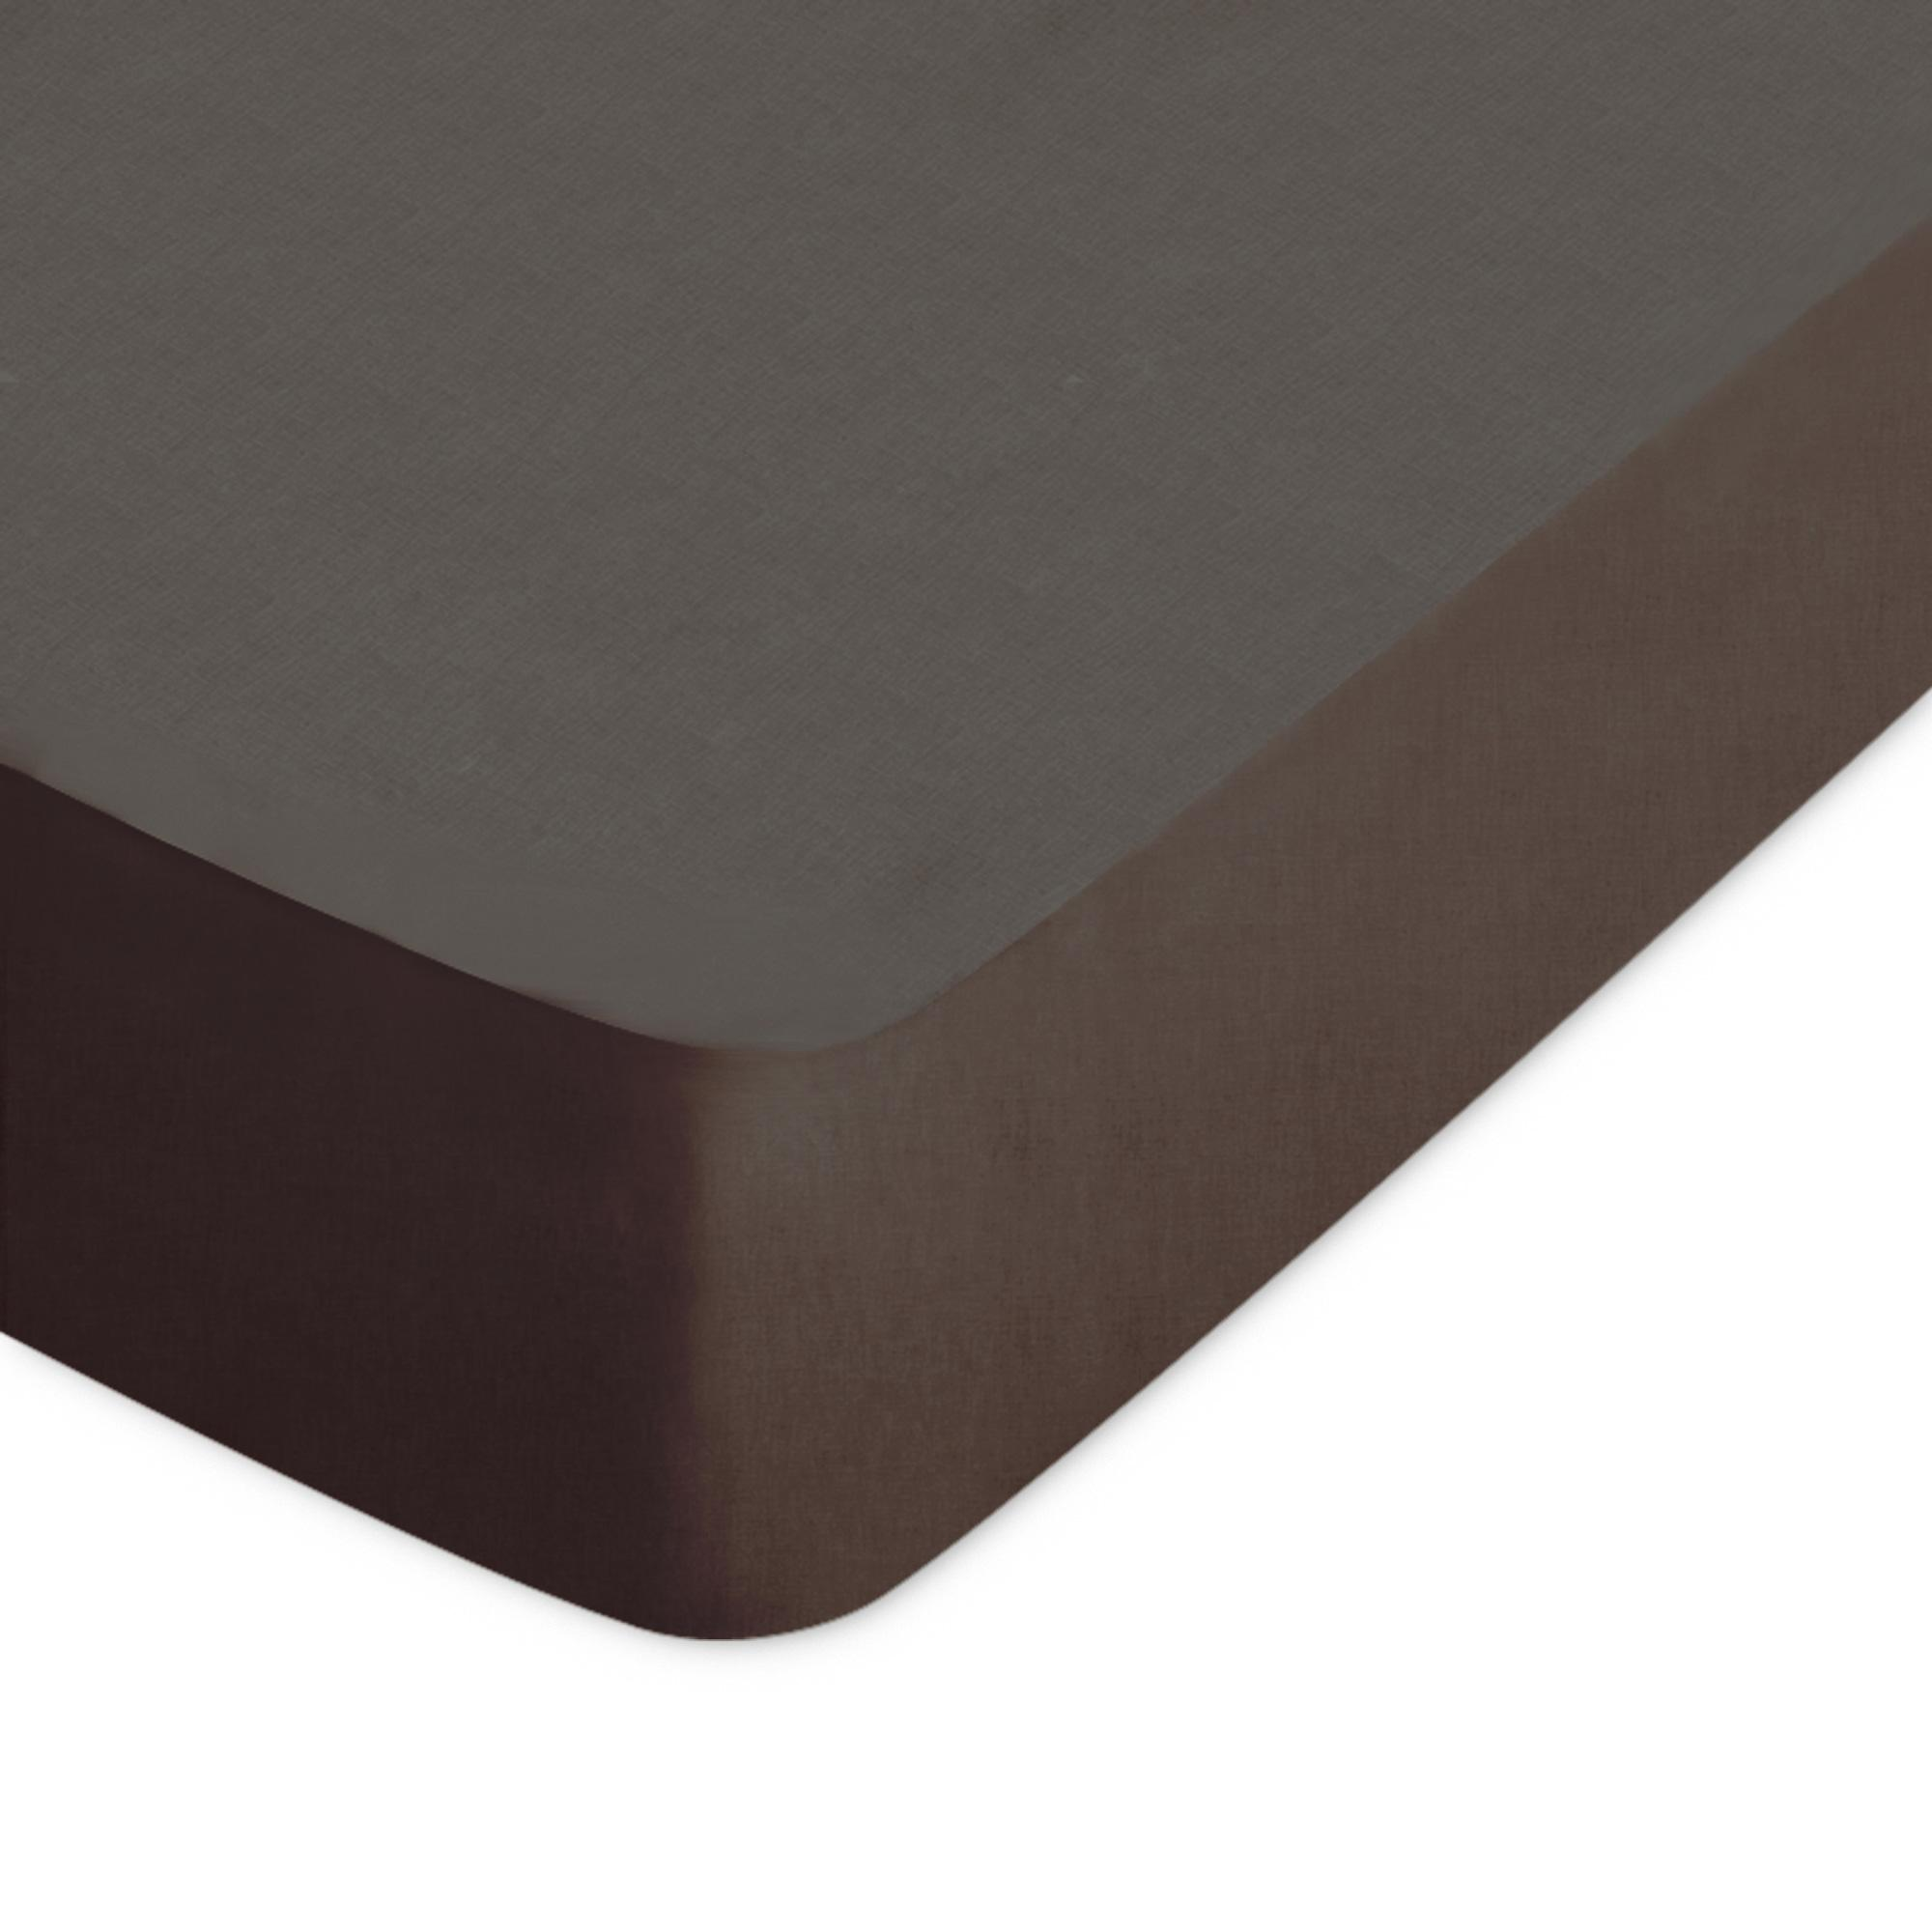 100x200 guide d 39 achat for Drap housse 100x200